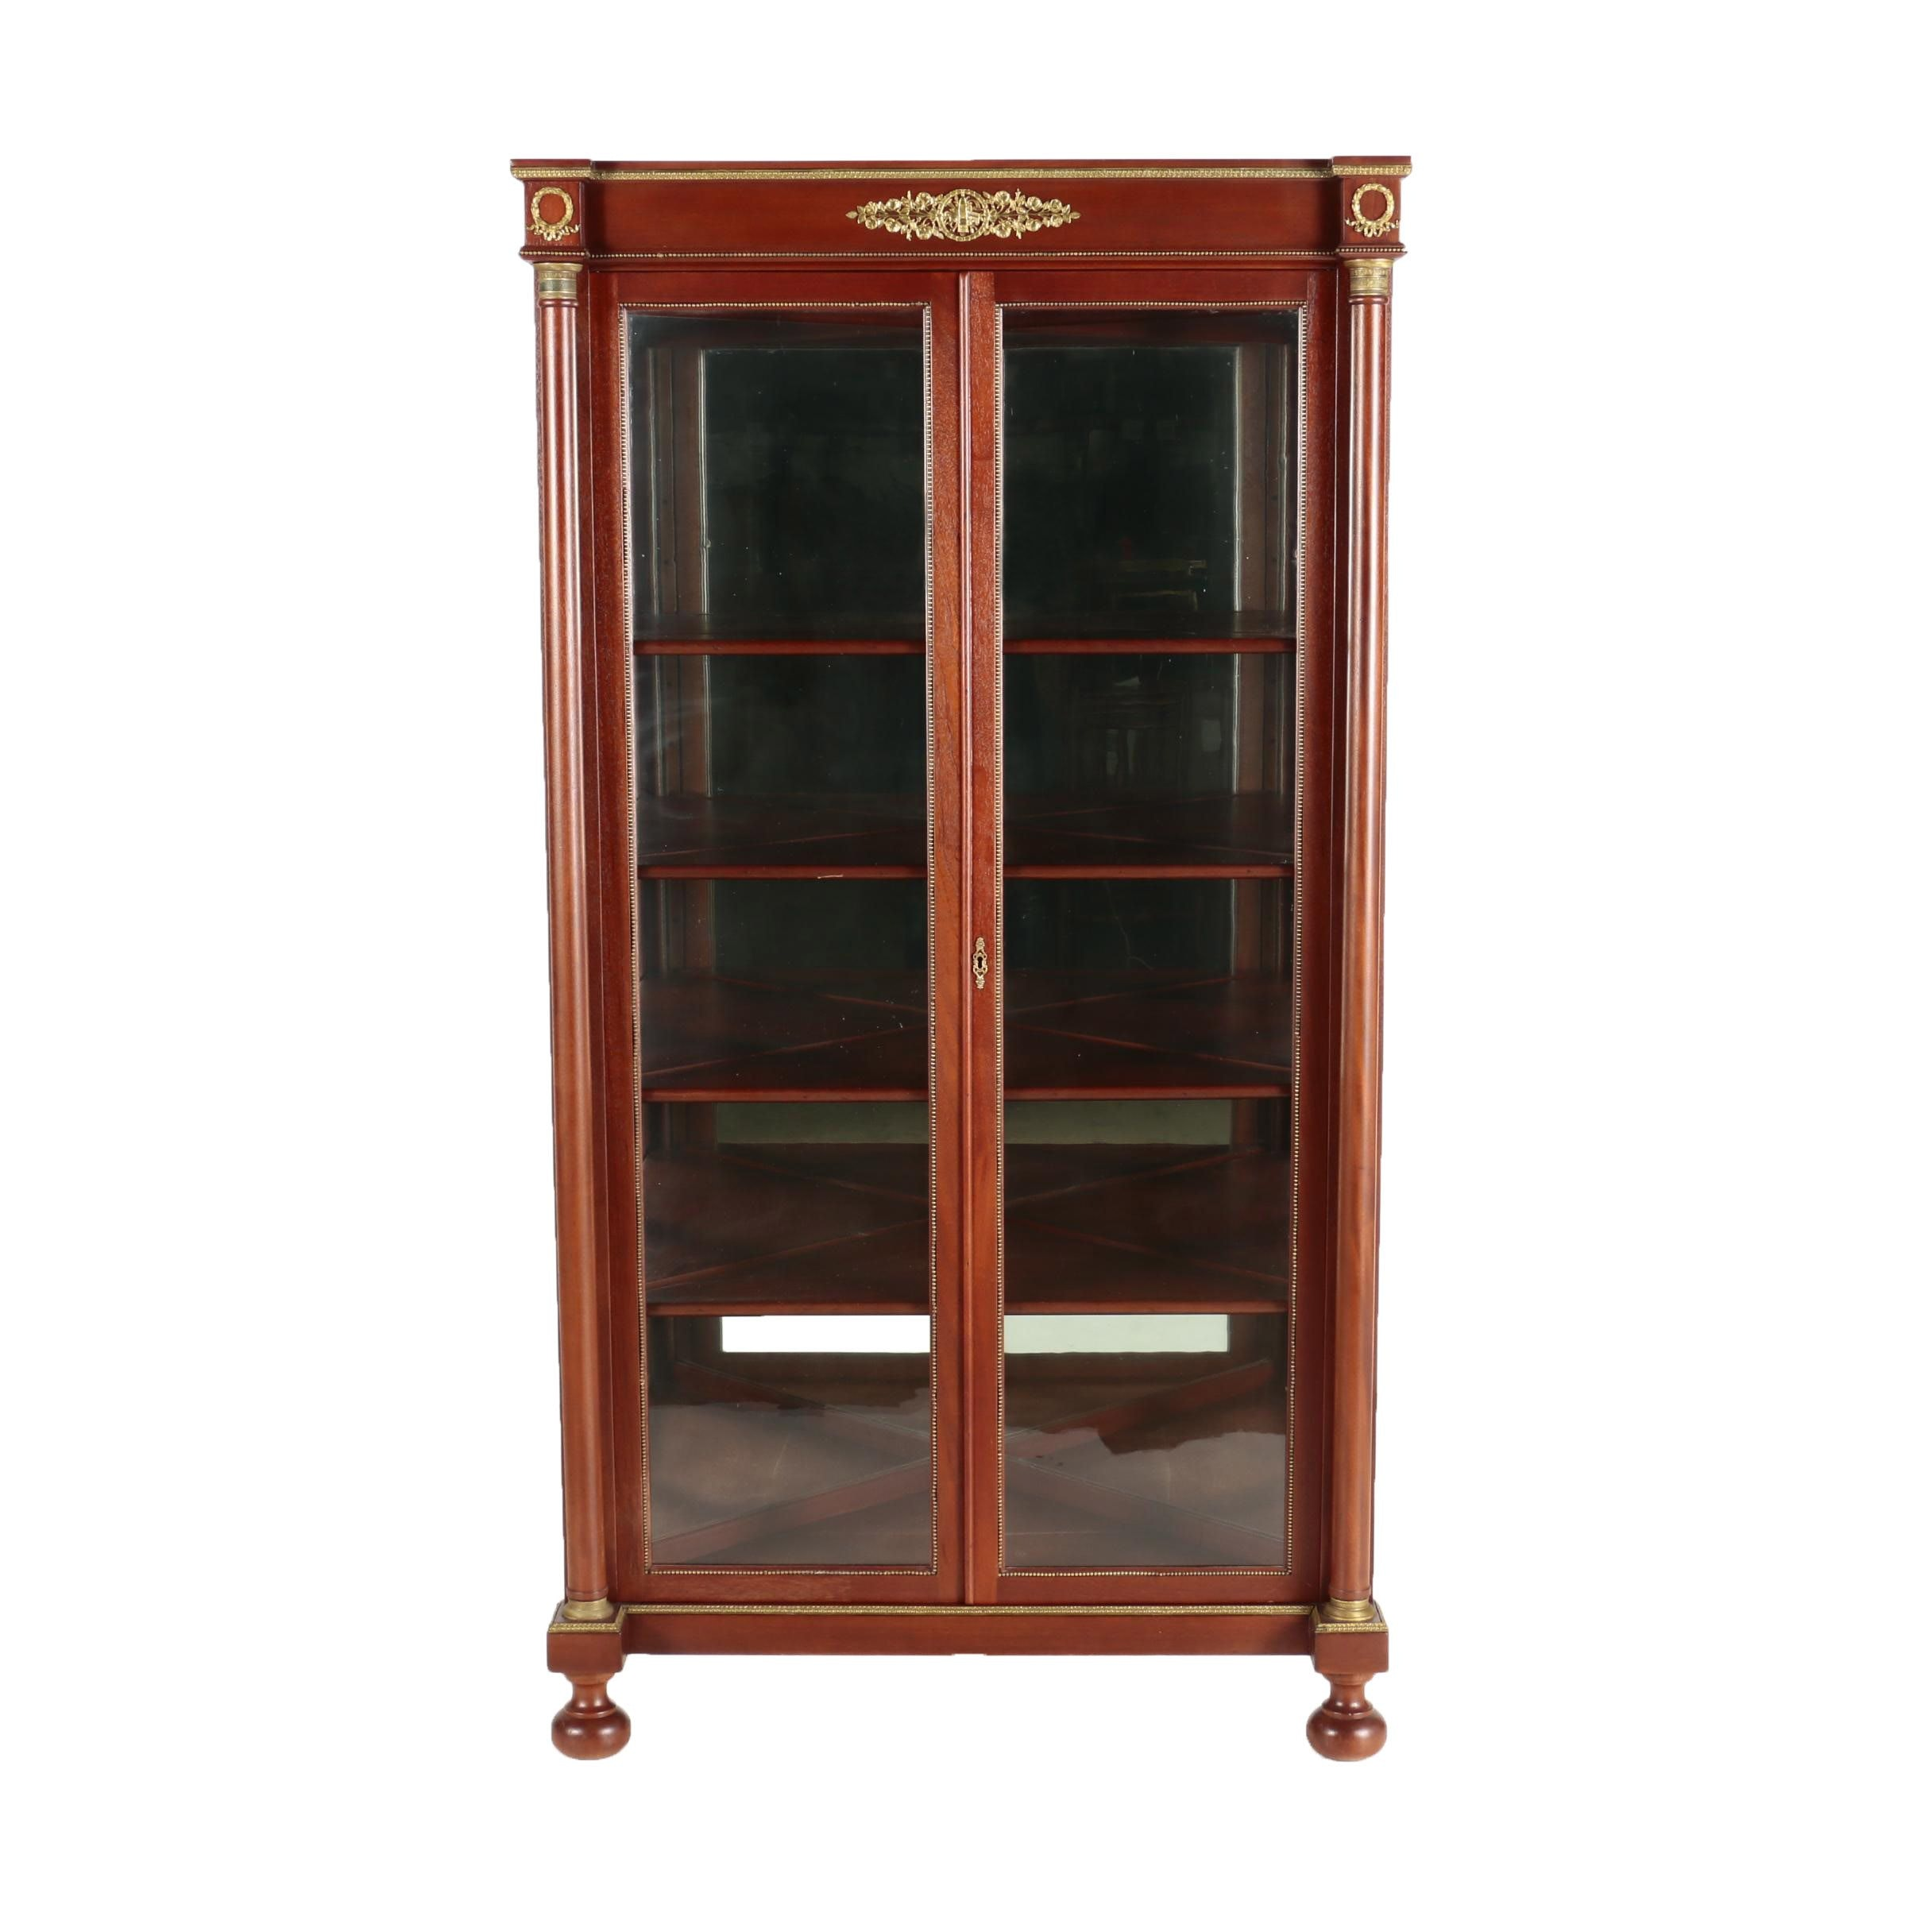 Louis Philippe Style Gilt-Metal & Mahogany Corner Display Cabinet, 20th Century